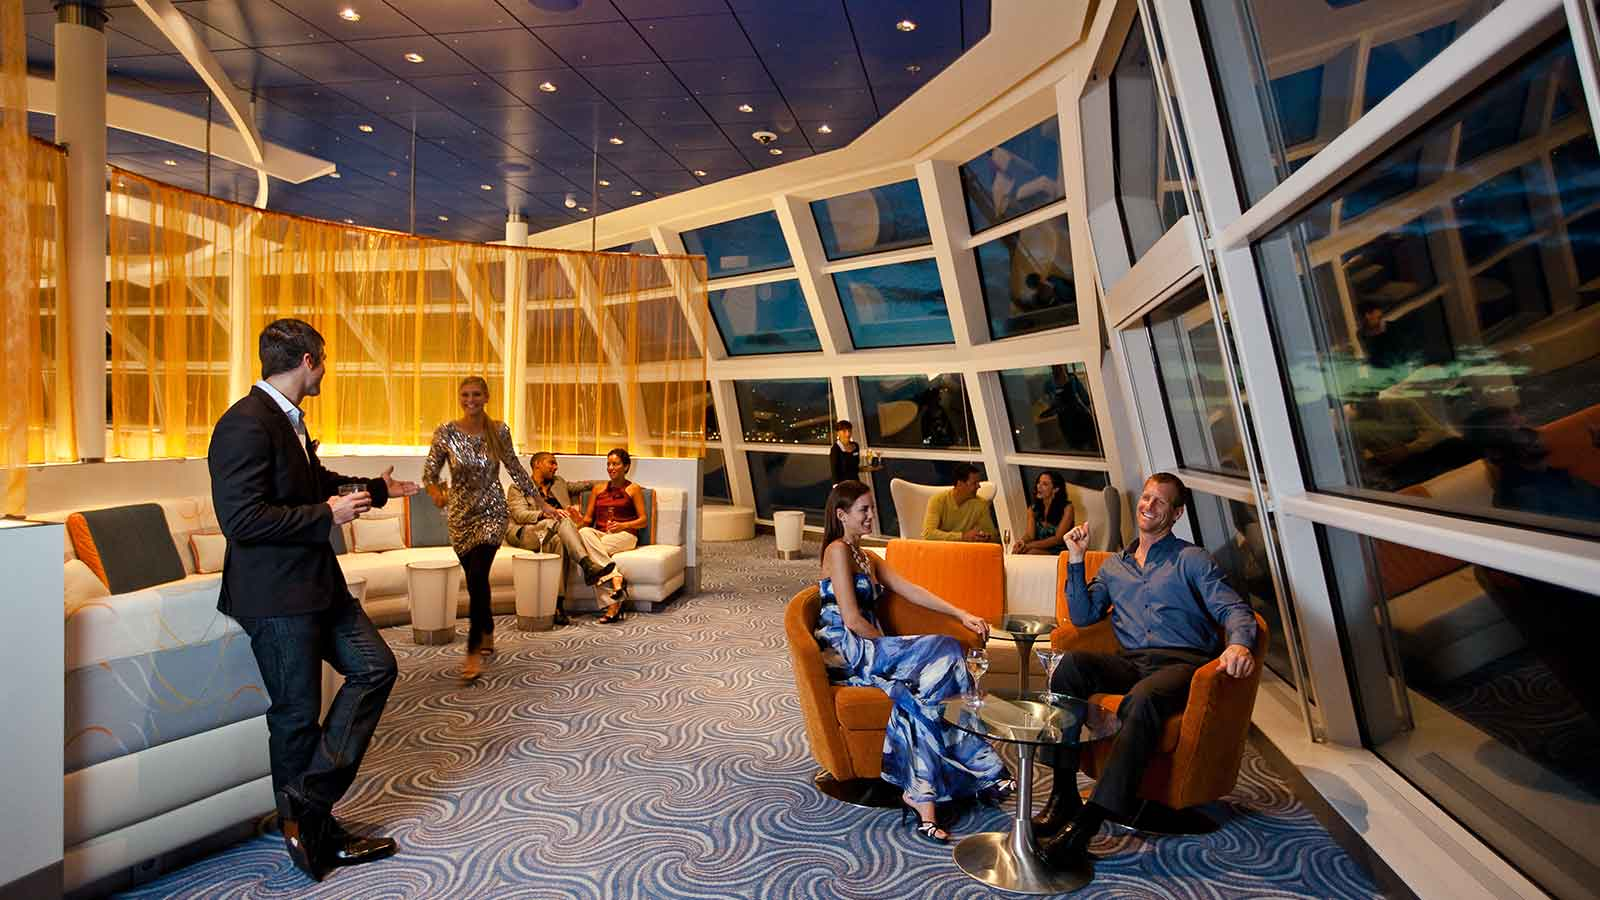 Swinging on celebrity equinox that can